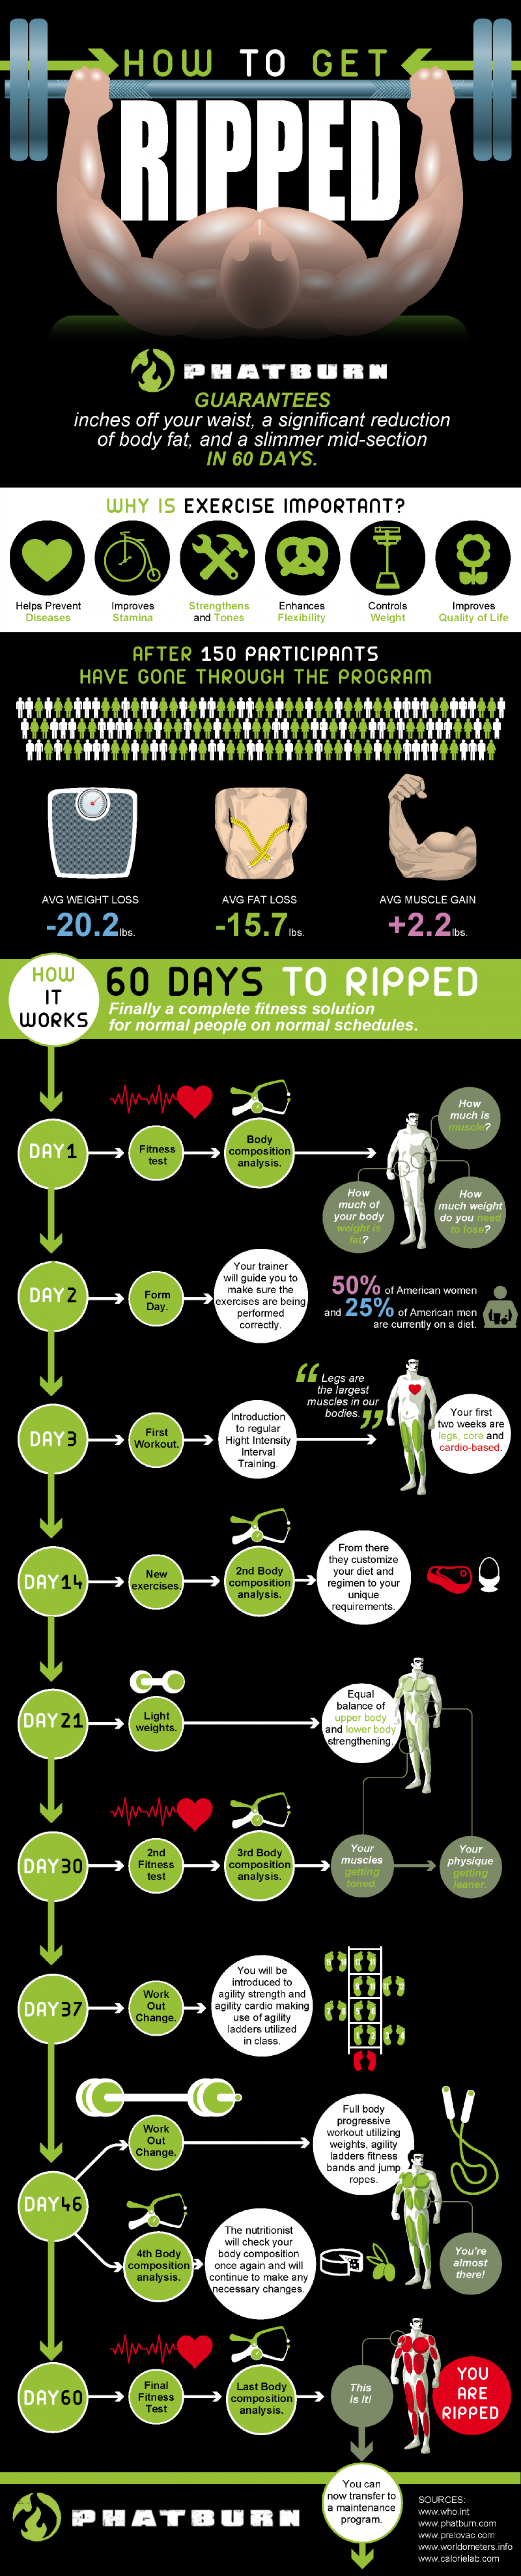 60 days to ripped, here's how we do it  Infographic